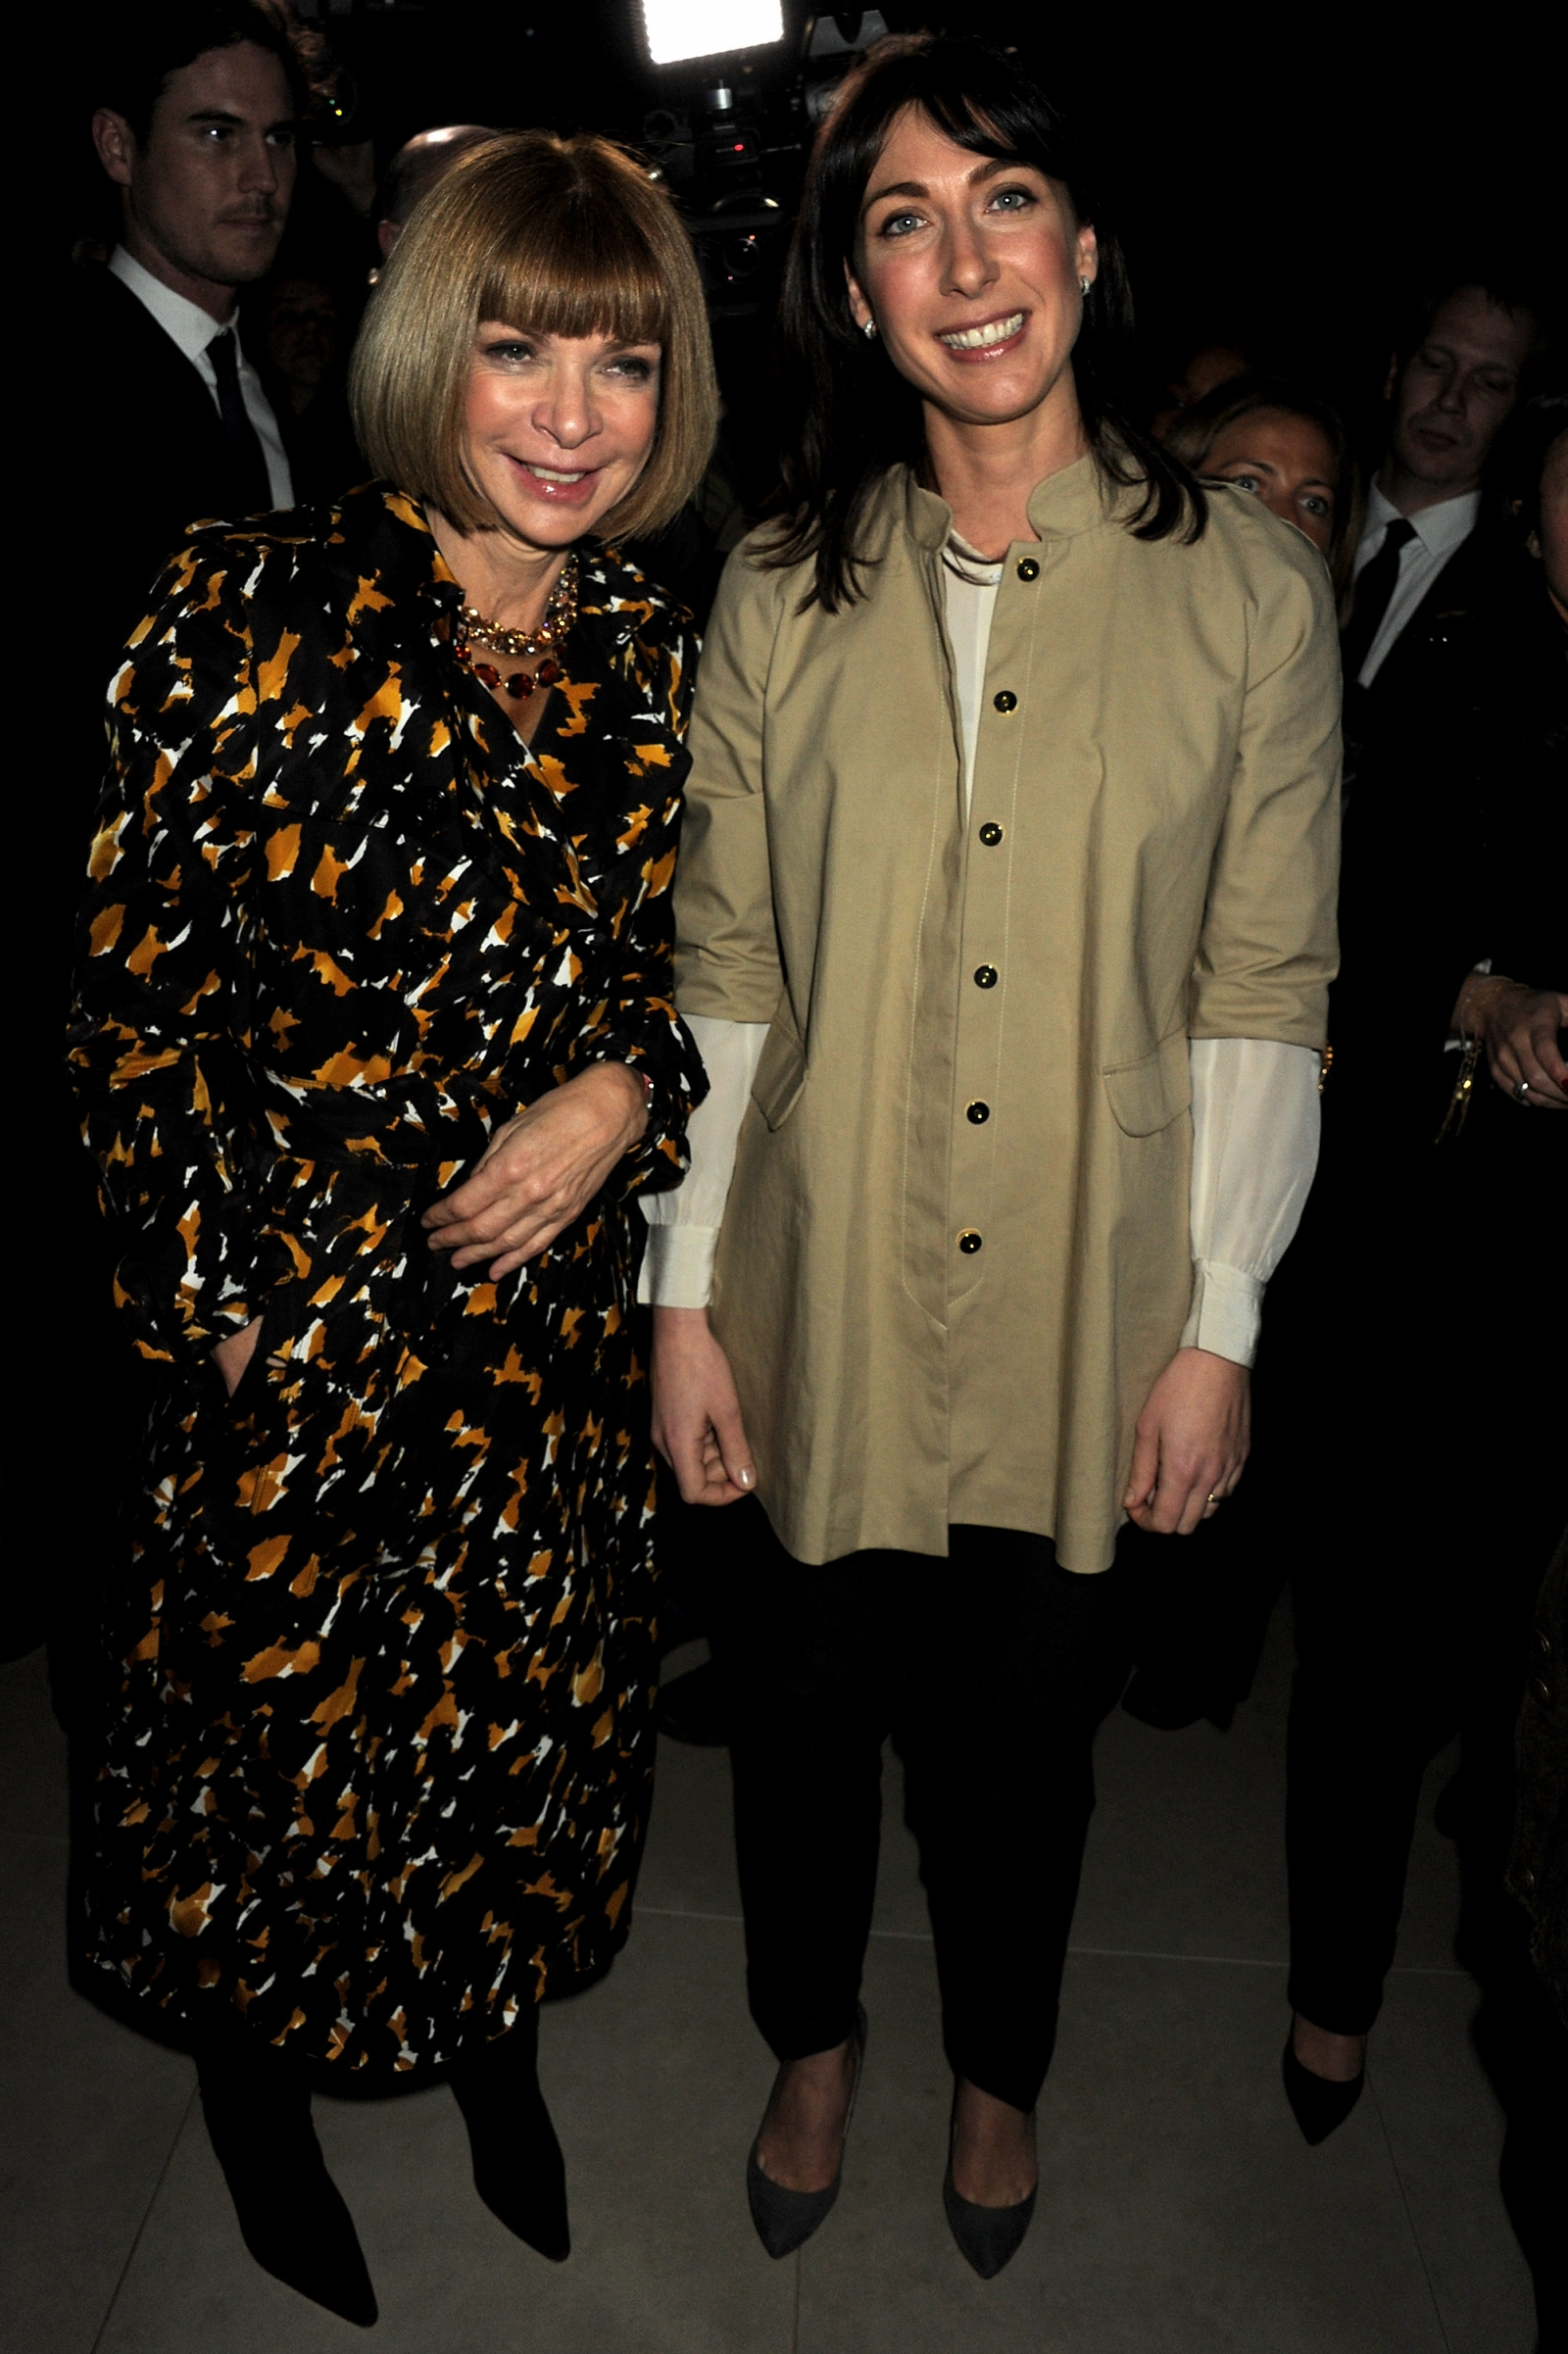 Anna Wintour and Sam Cam